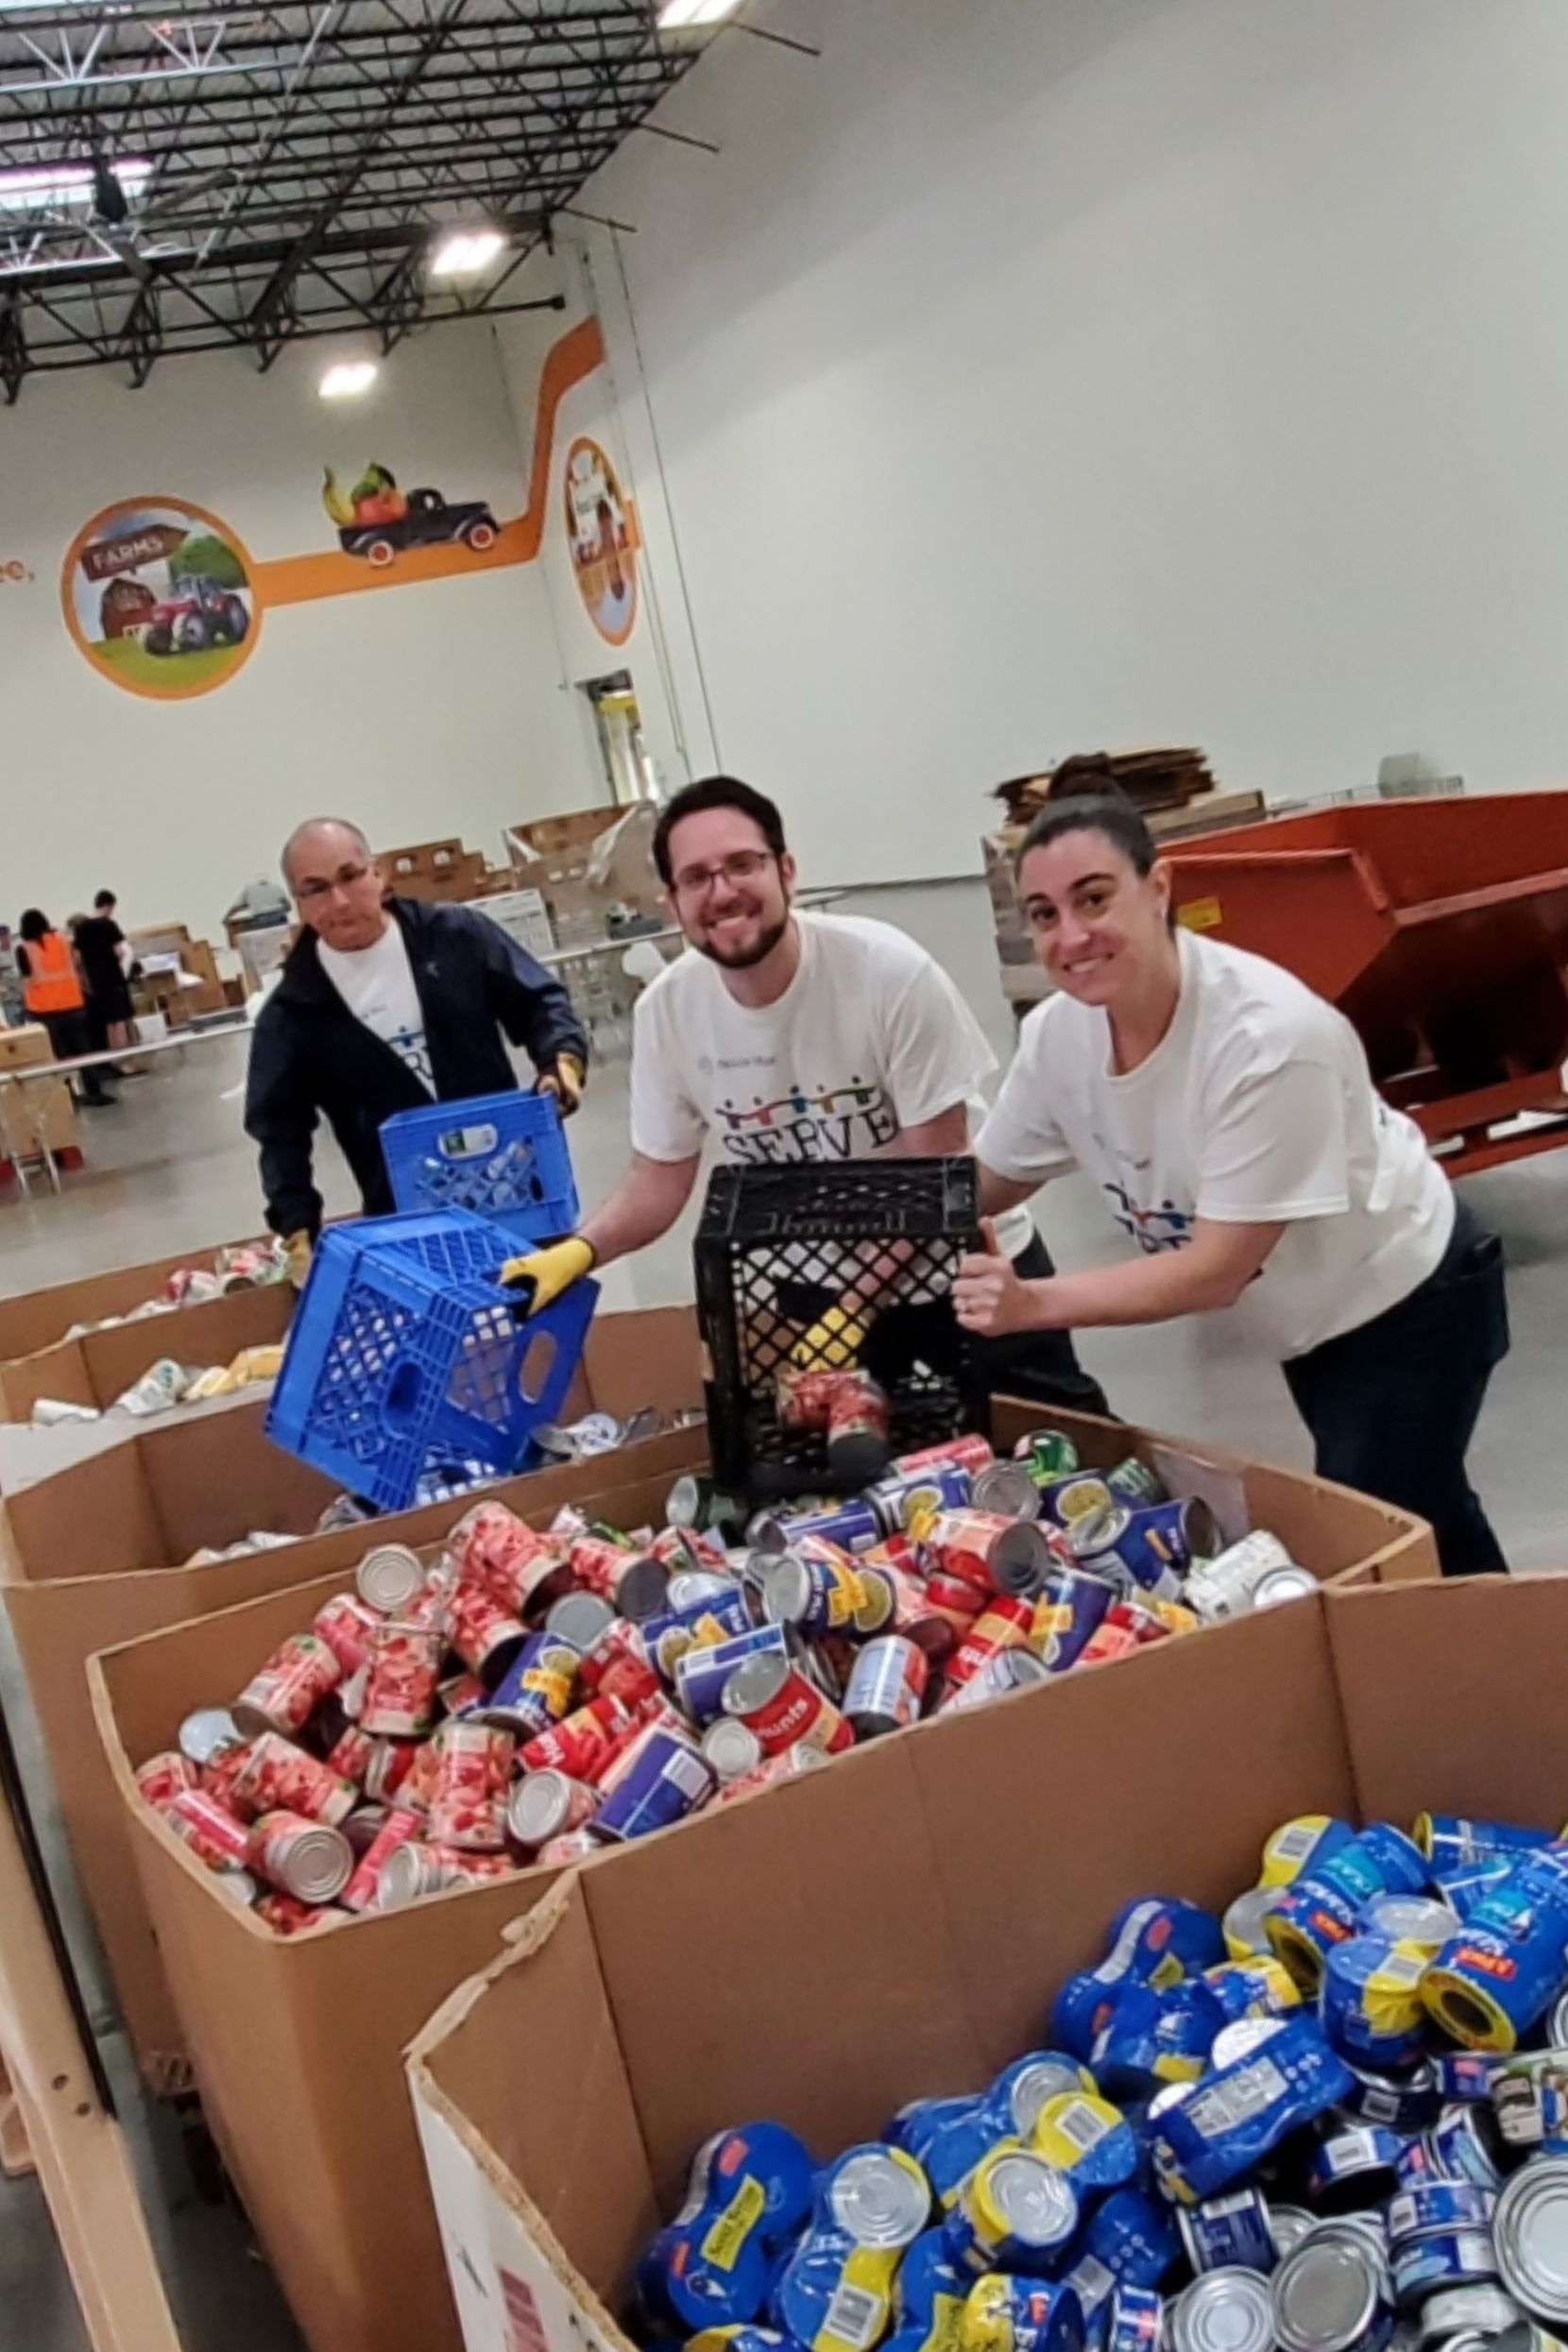 Fannie Mae employees give back to their community at the North Texas Food Bank during 7 Days to SERVE, the company's annual week of service.